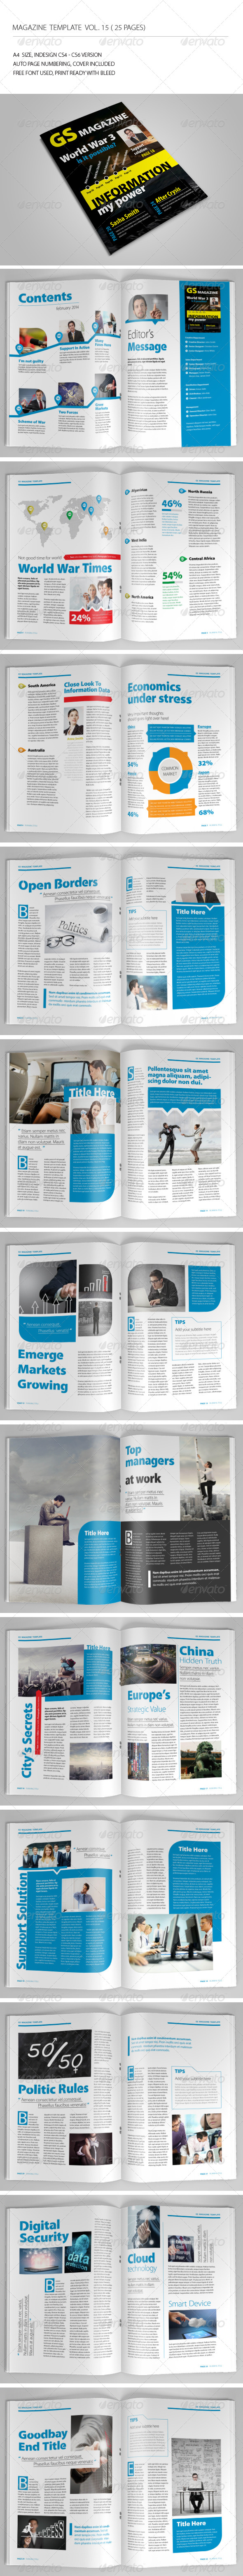 25 Pages Magazine Template Vol15 - Magazines Print Templates